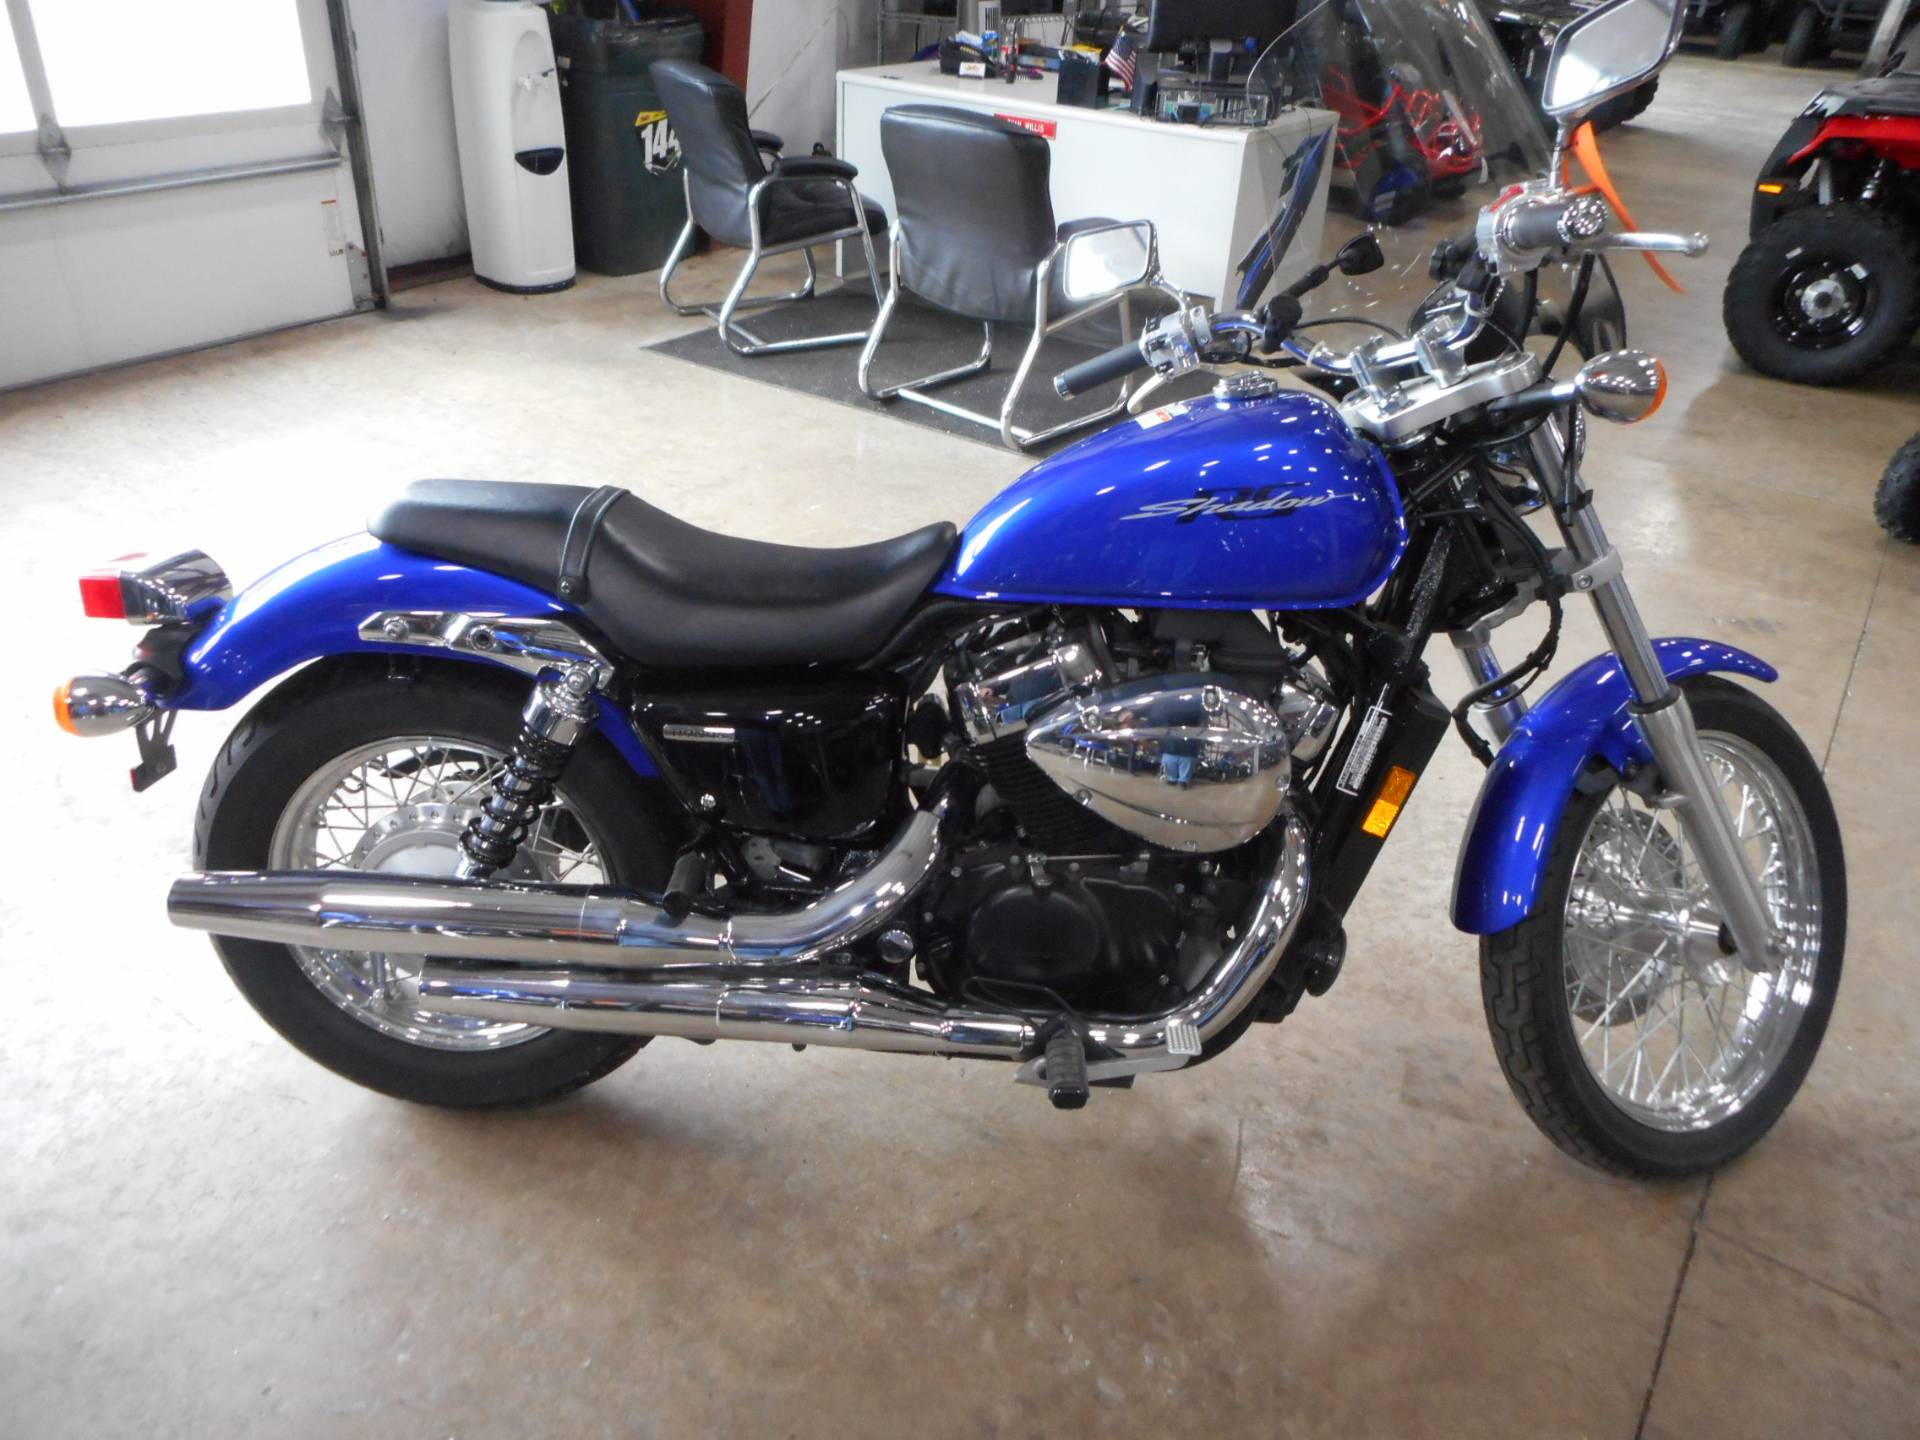 Used 2012 Honda Shadow Rs Motorcycles In Belvidere Il